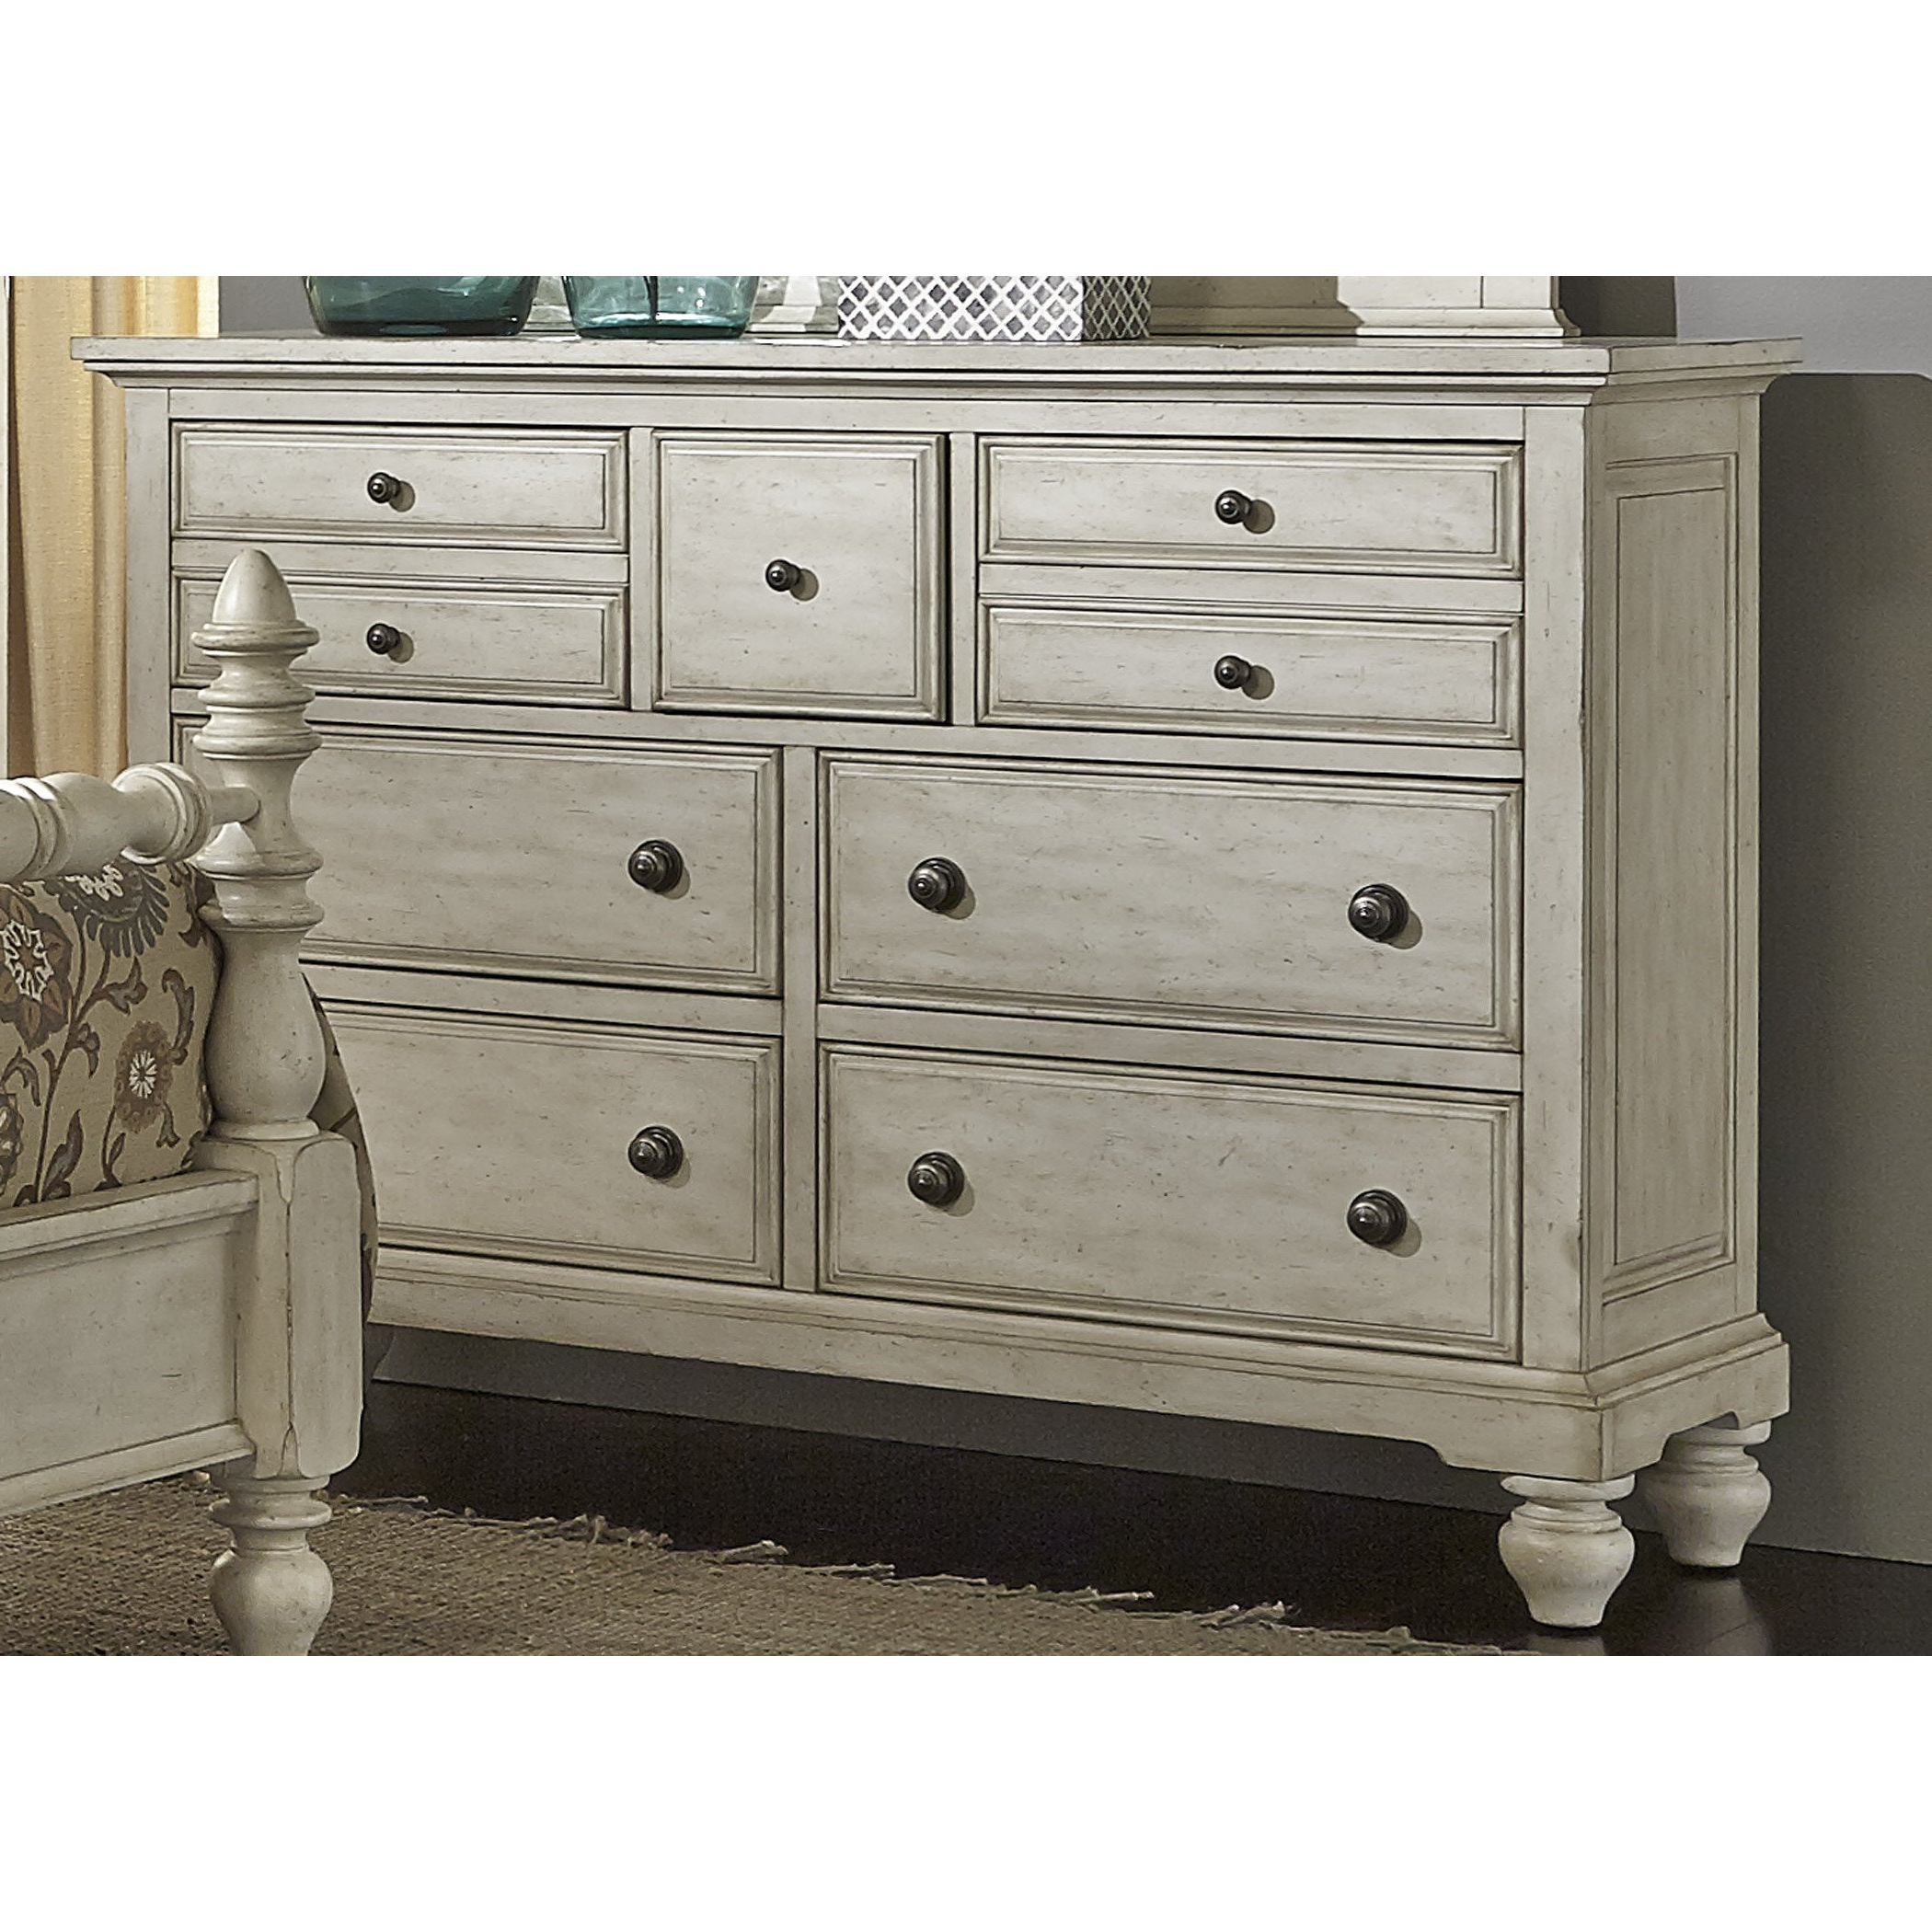 Shop High Country Pine White Washed 7 Drawer Dresser – On Sale Intended For Current Rustic Black & Zebra Pine Sideboards (Gallery 10 of 20)